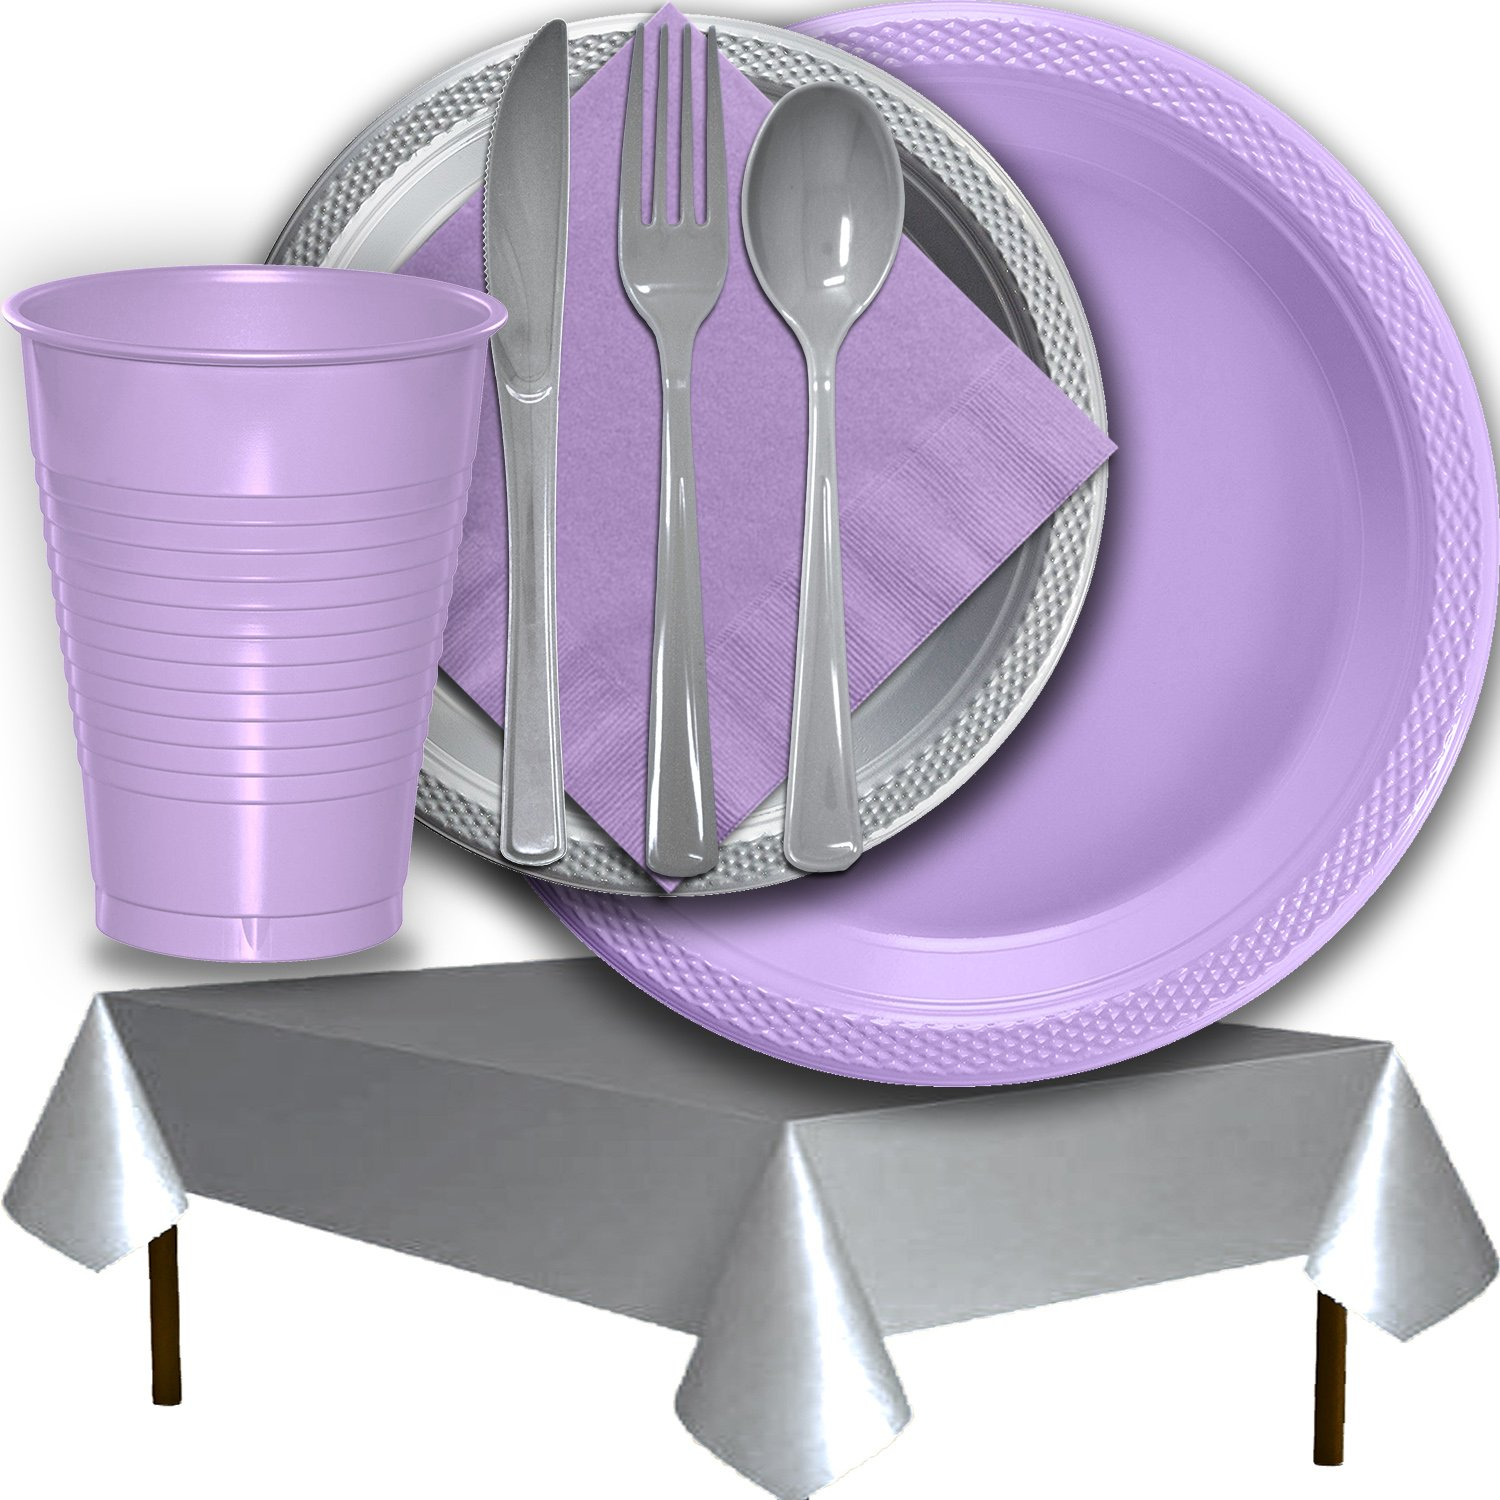 Plastic Party Supplies for 50 Guests - Lavender and Silver - Dinner Plates, Dessert Plates, Cups, Lunch Napkins, Cutlery, and Tablecloths - Premium Quality Tableware Set by HeroFiber (Image #3)